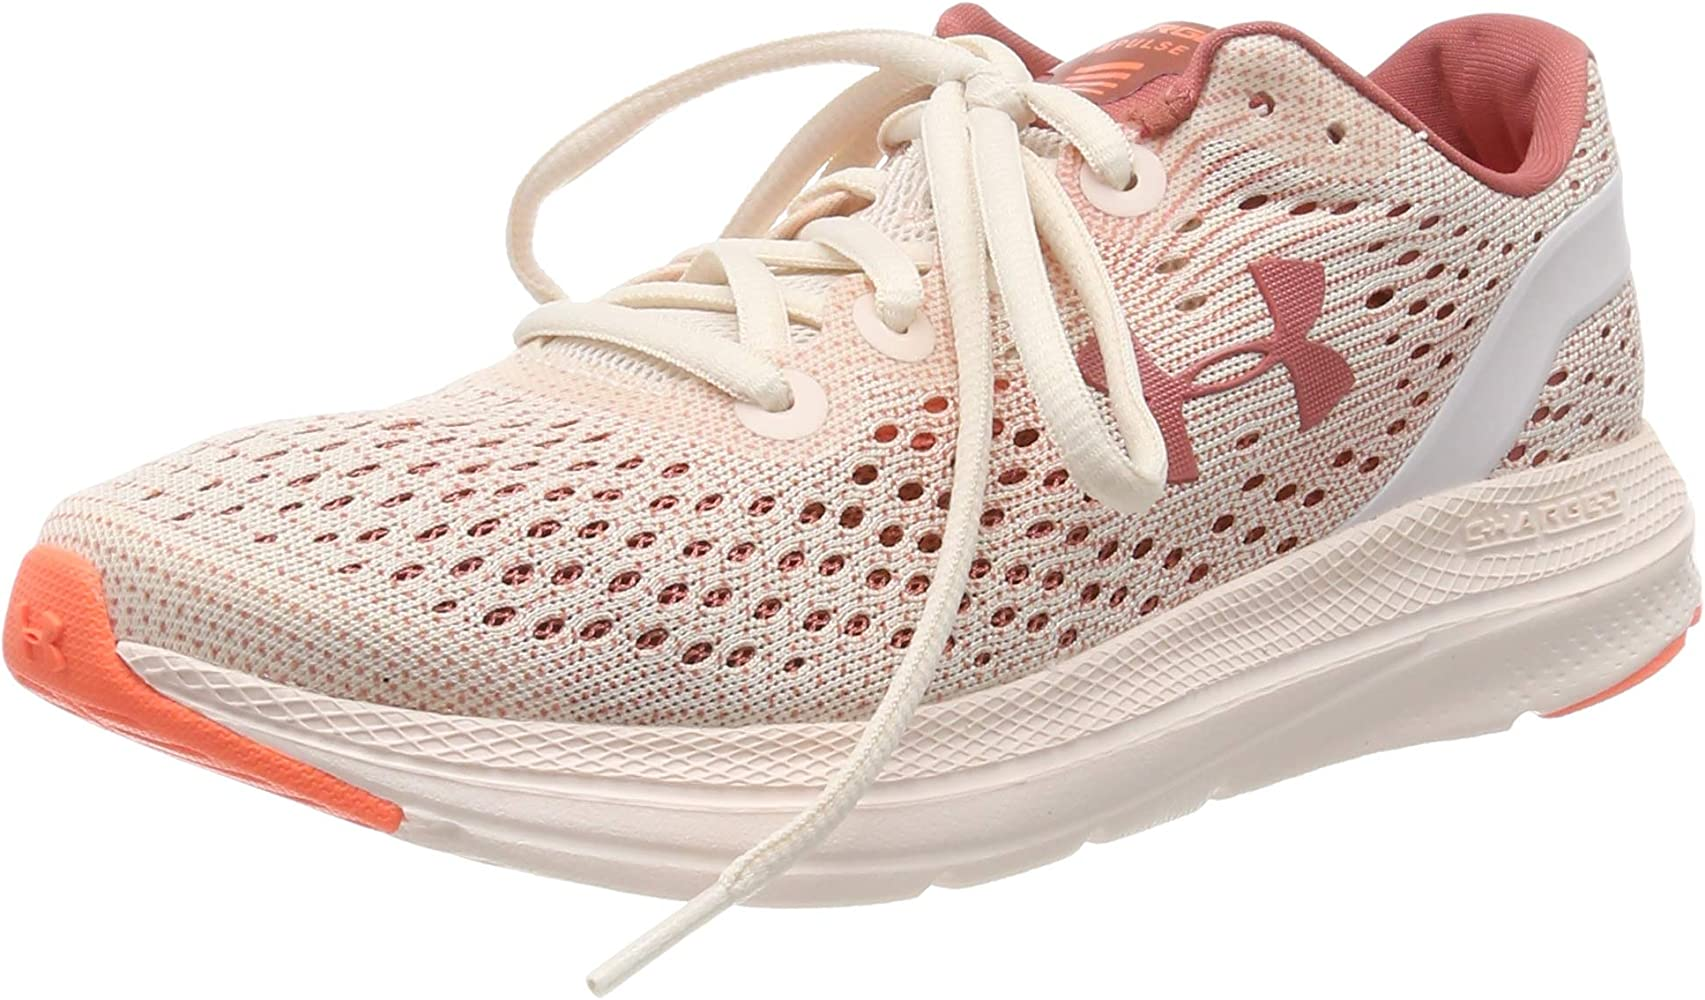 Under Armour Women's Charged Impulse